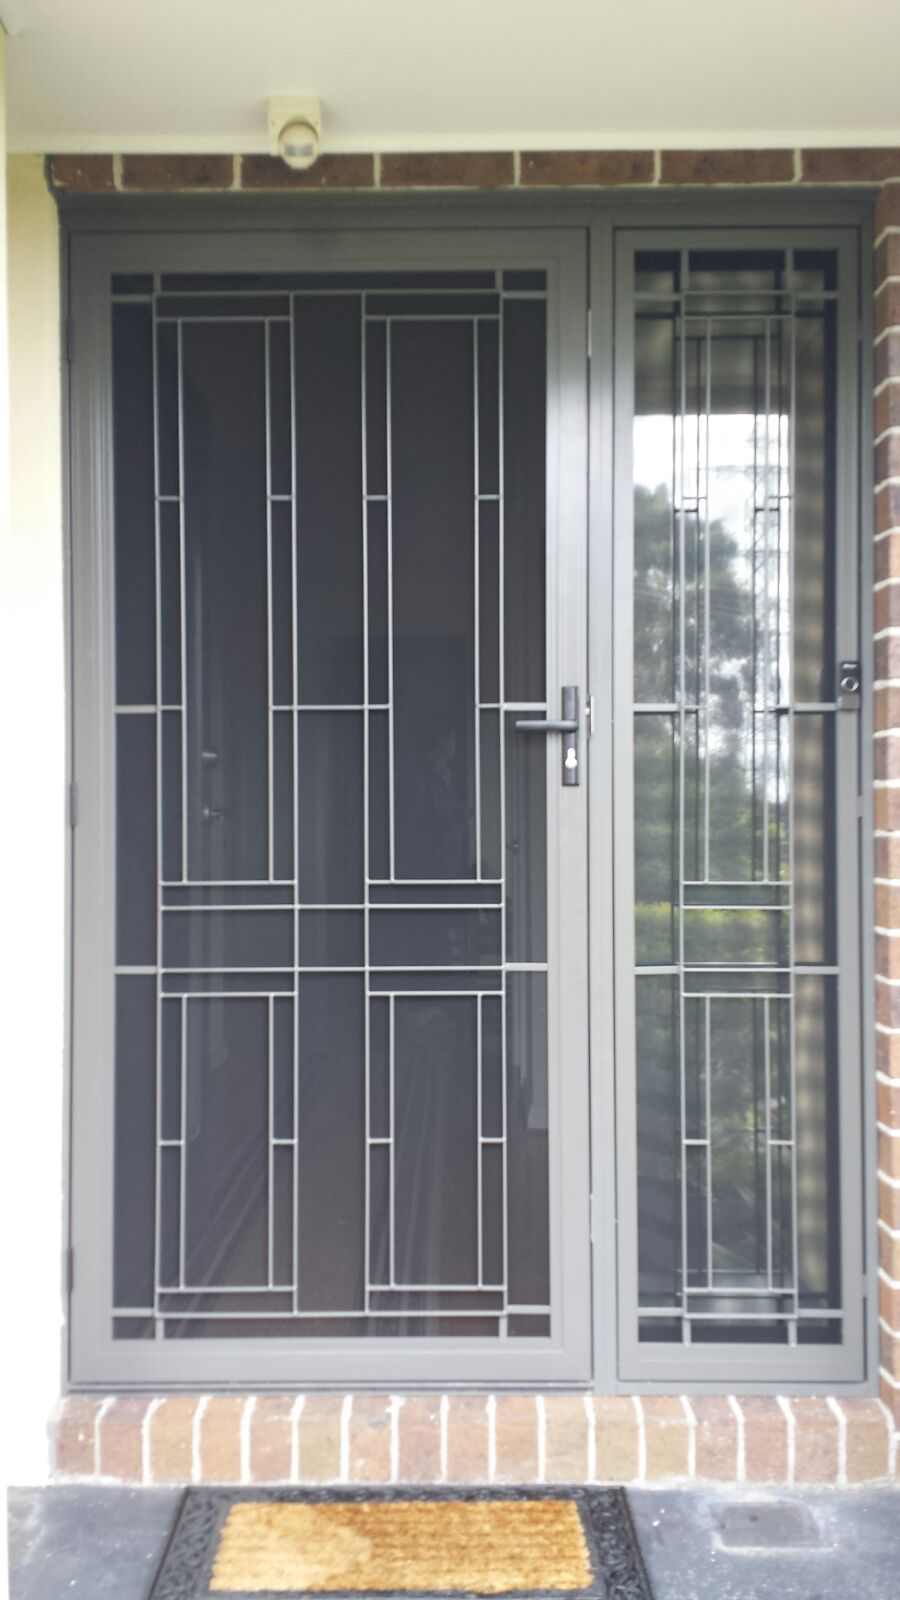 Aluminium Frame Security Door With Steel Grille And Stainless Steel